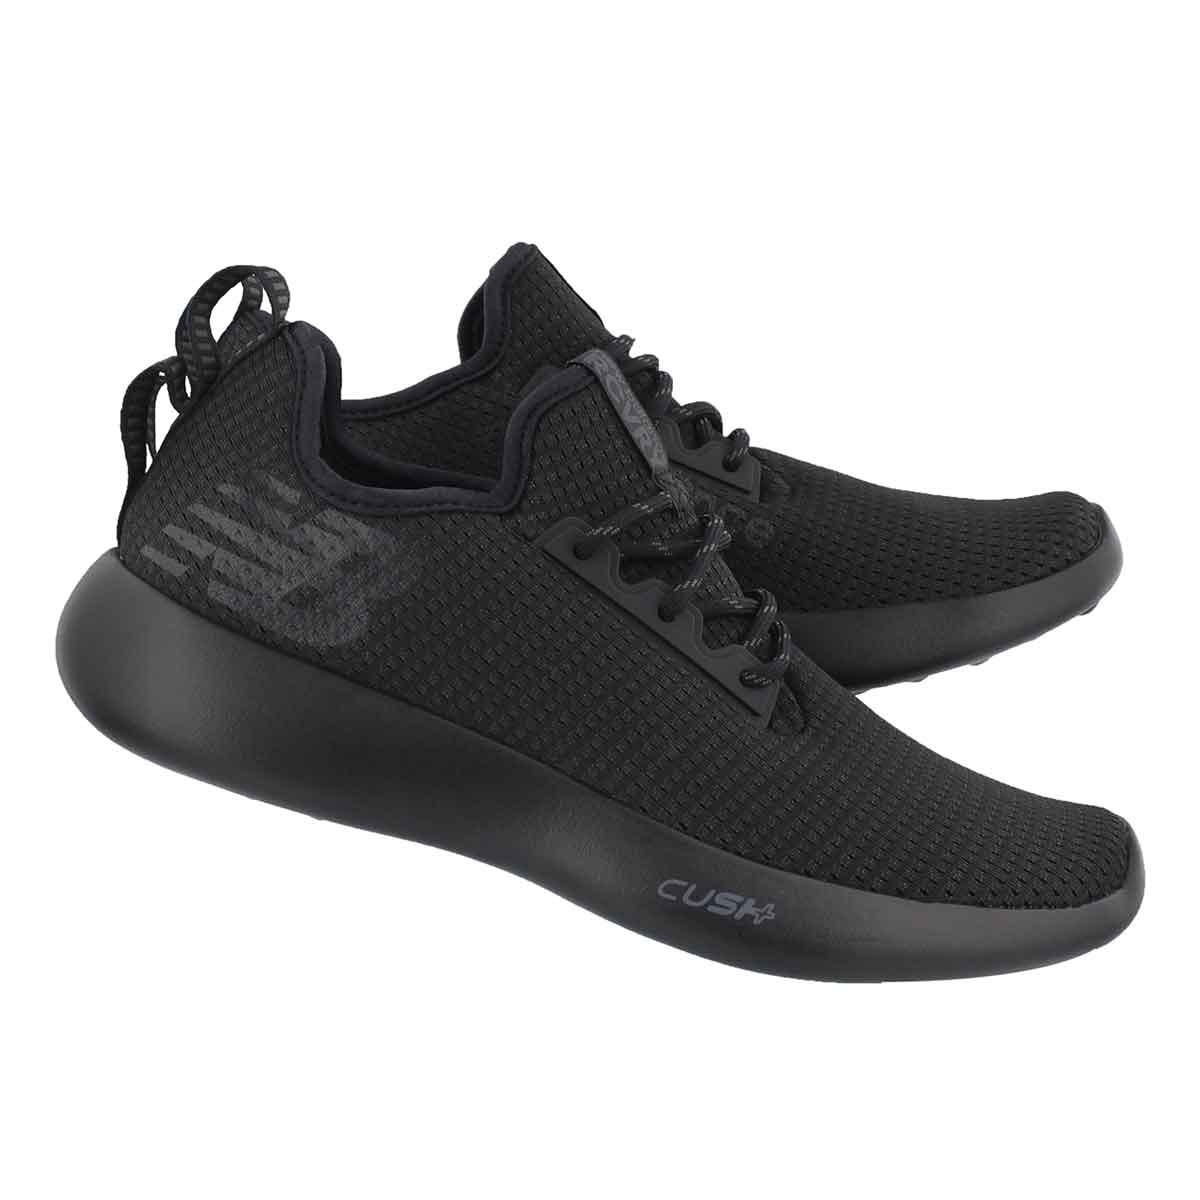 Mns Recovery black/black lace up sneaker